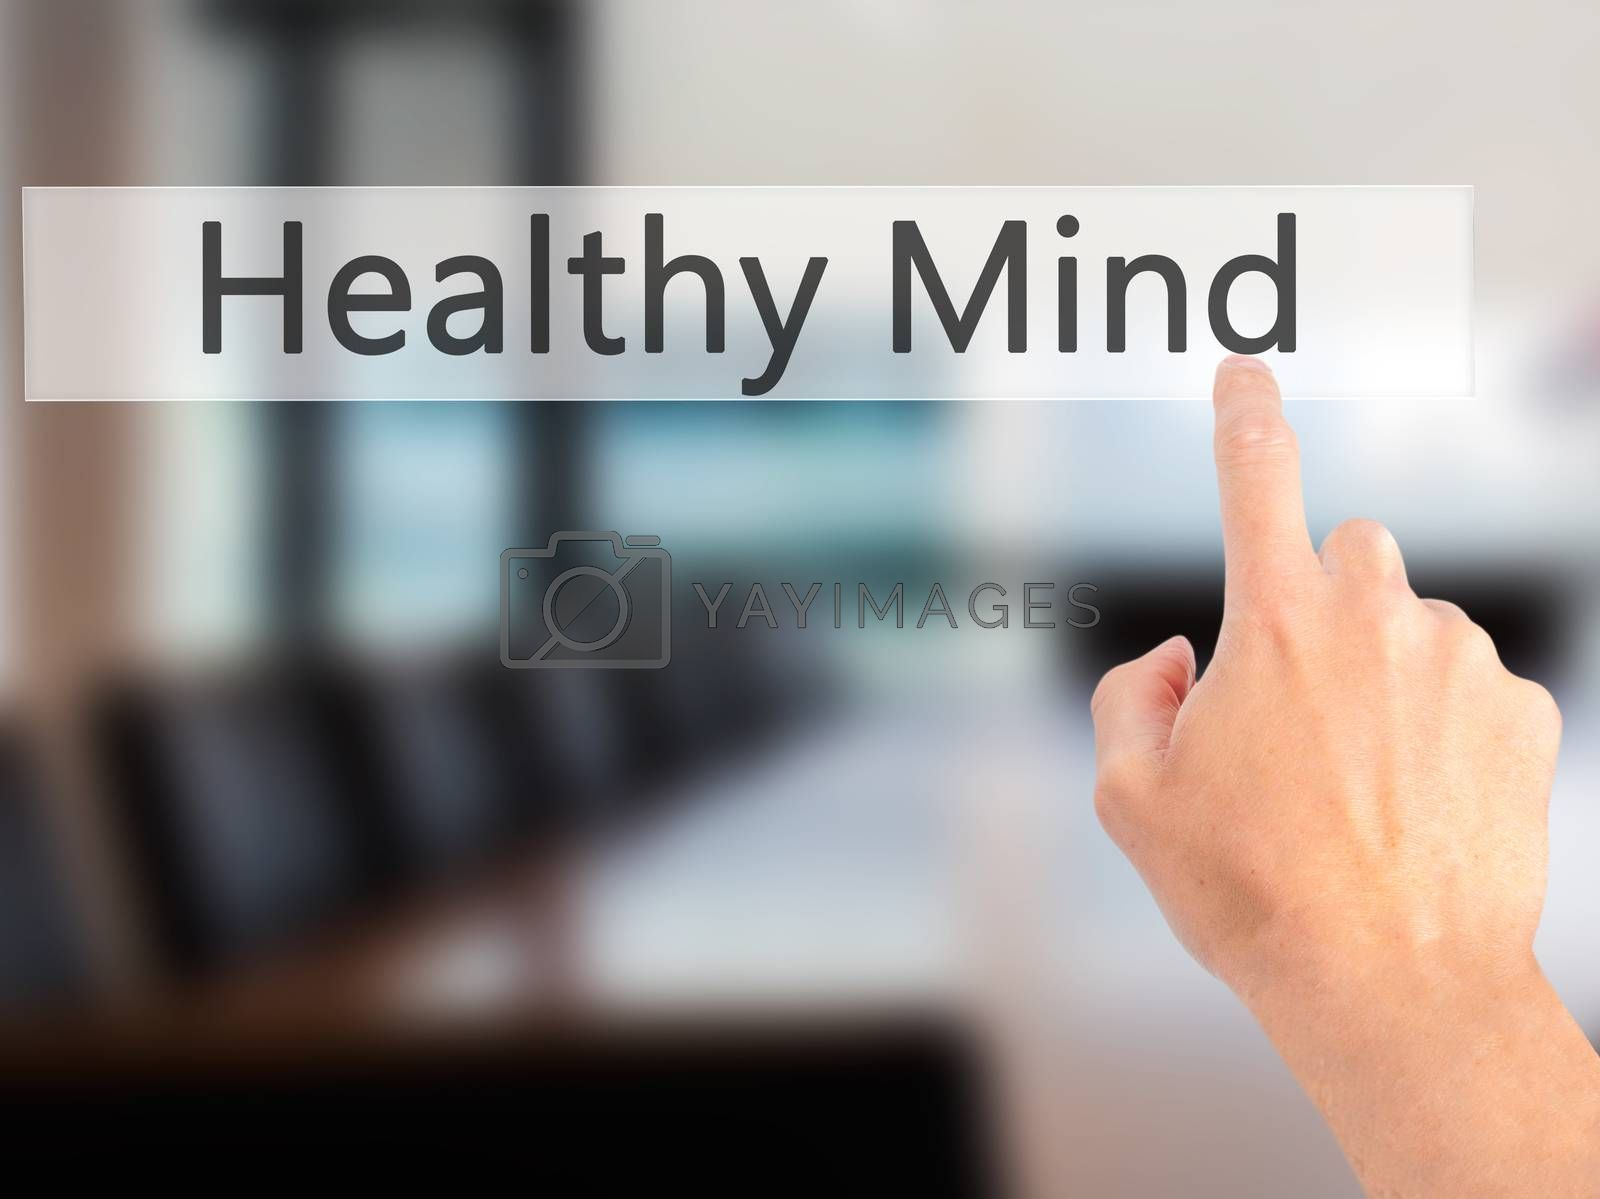 Healthy Mind - Hand pressing a button on blurred background conc by jackald